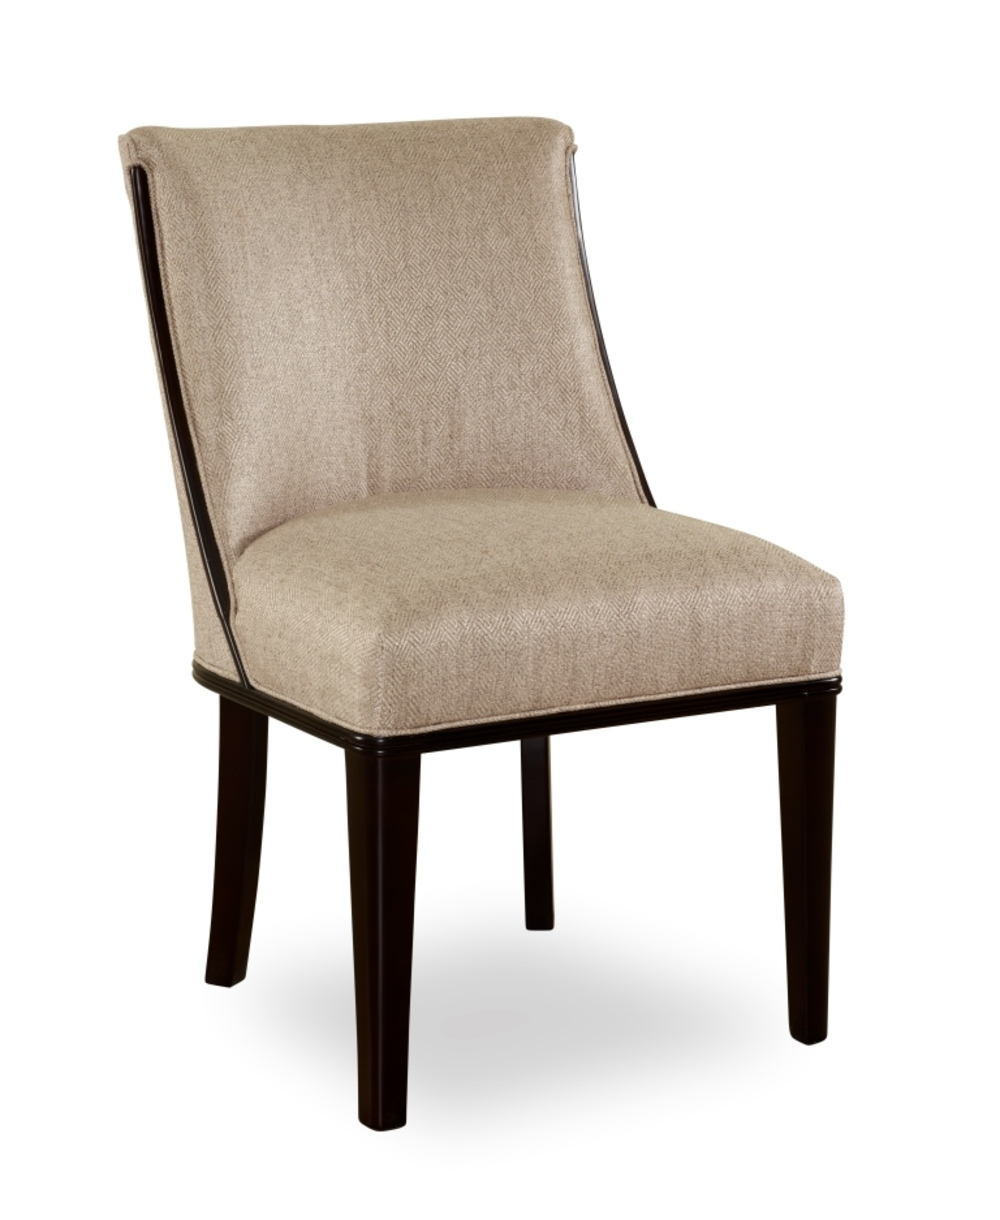 Designmaster Furniture - Bellmore Side Chair